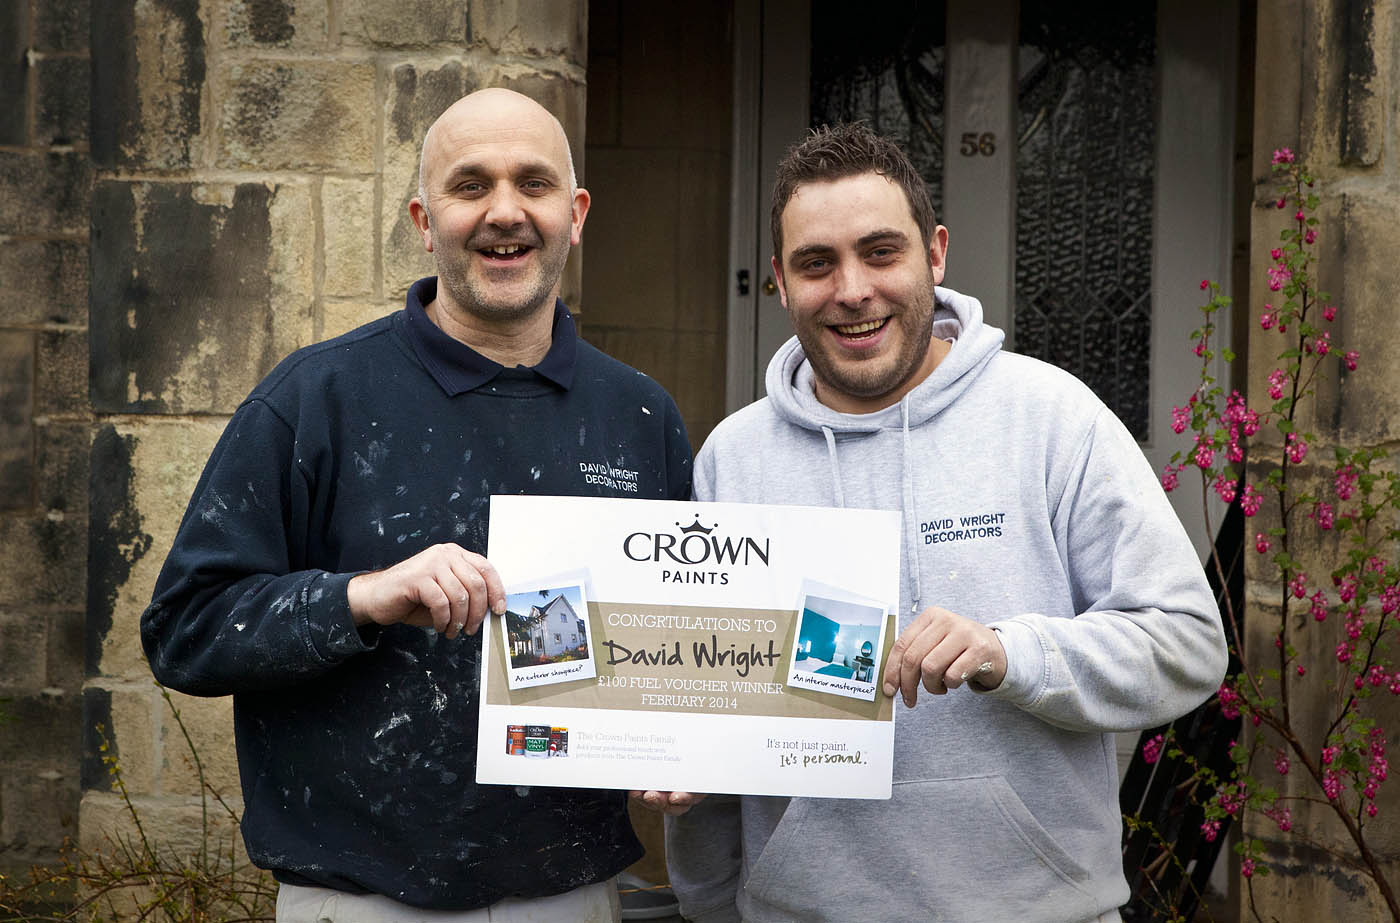 Crown Paints £100 Facebook Prize Scooped!